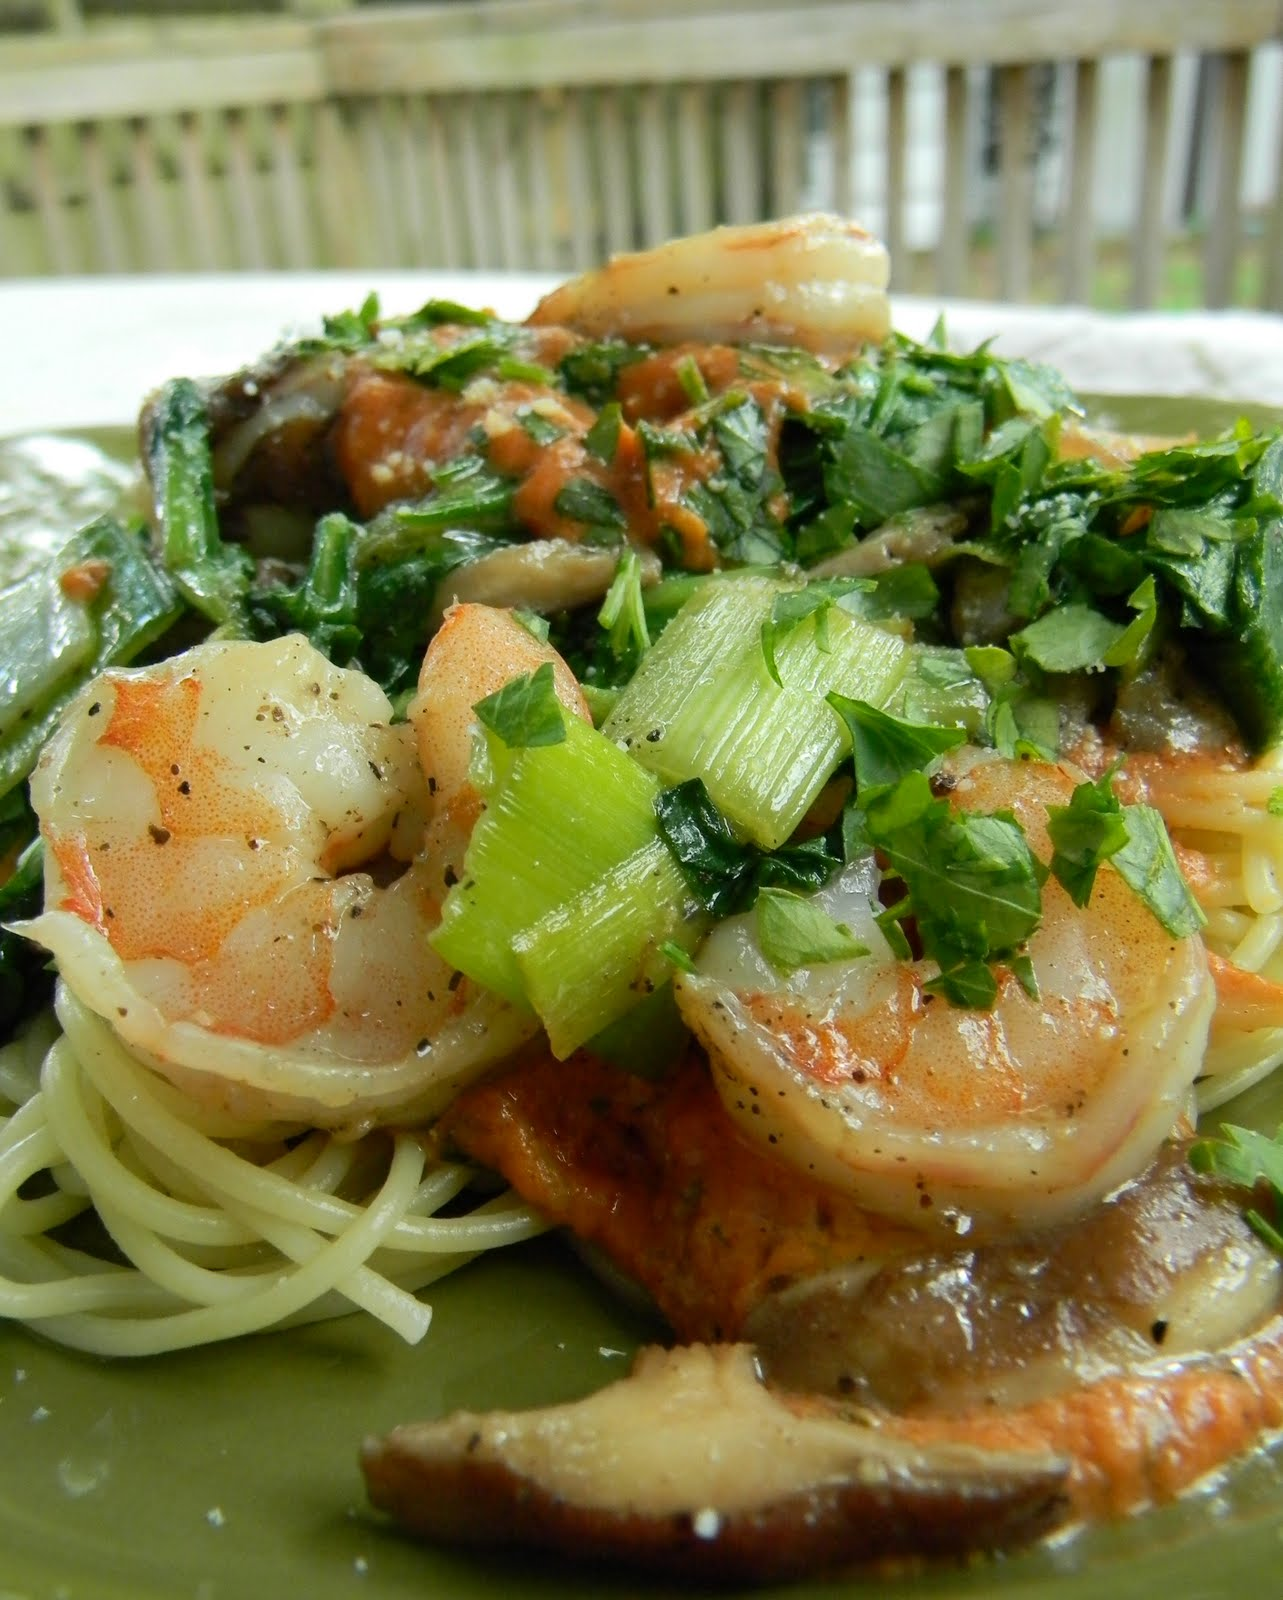 ... minutes add to pasta shrimp and vegetables and toss together to serve